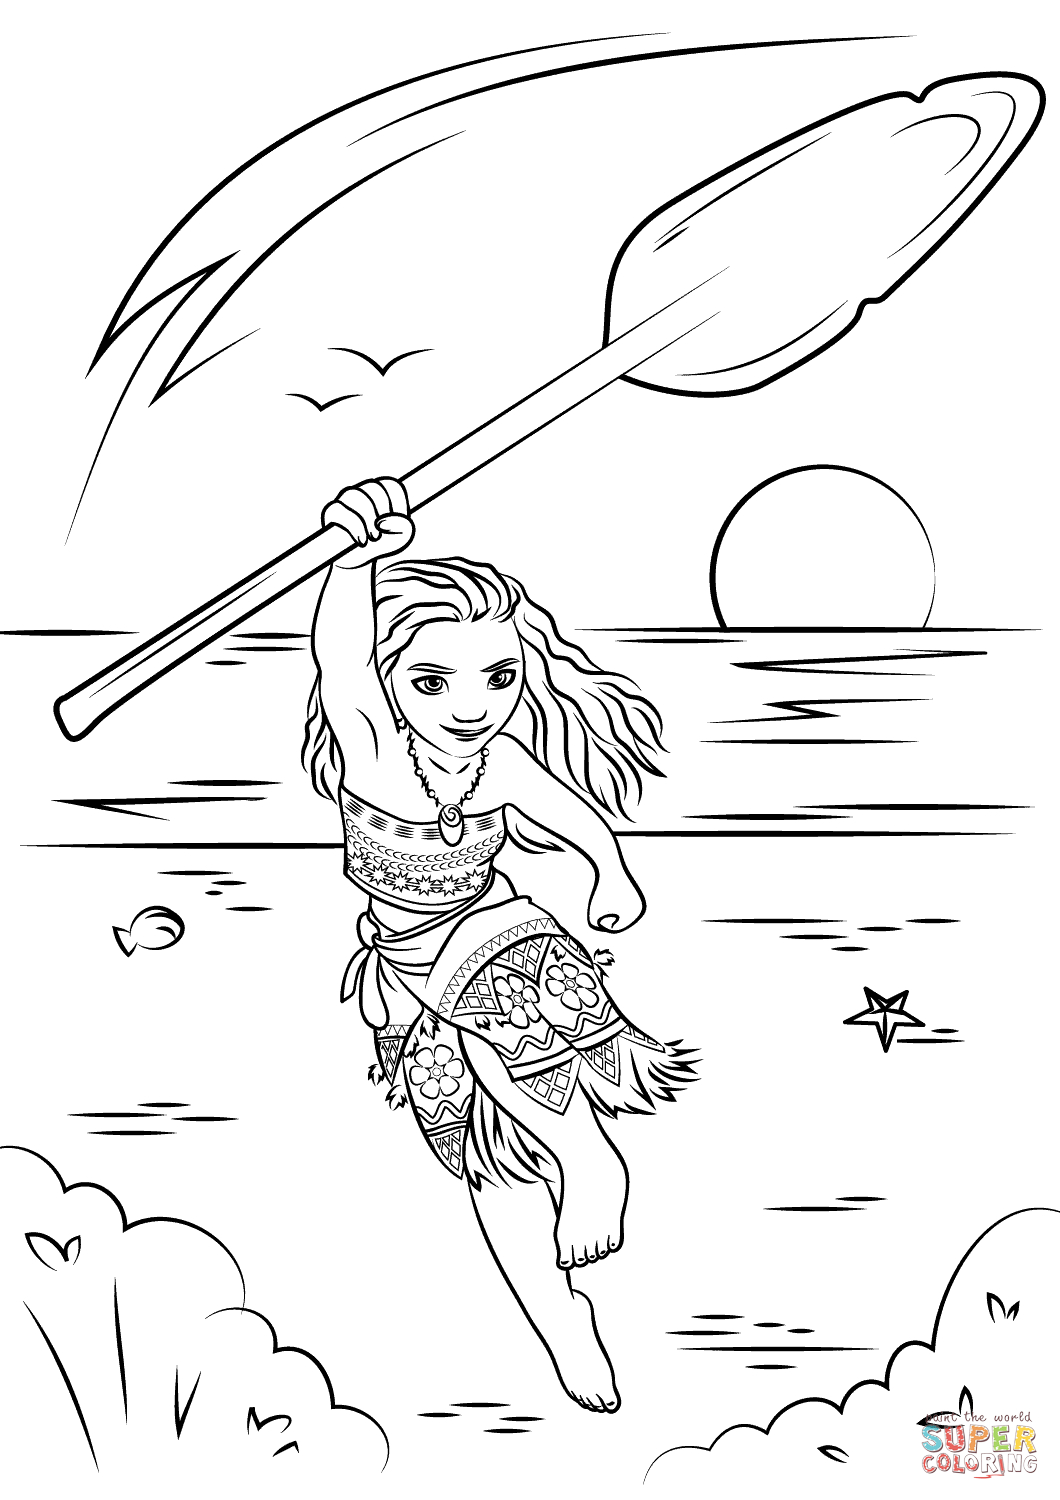 Moana Coloring Page | Free Printable Coloring Pages - Moana Coloring Pages Free Printable